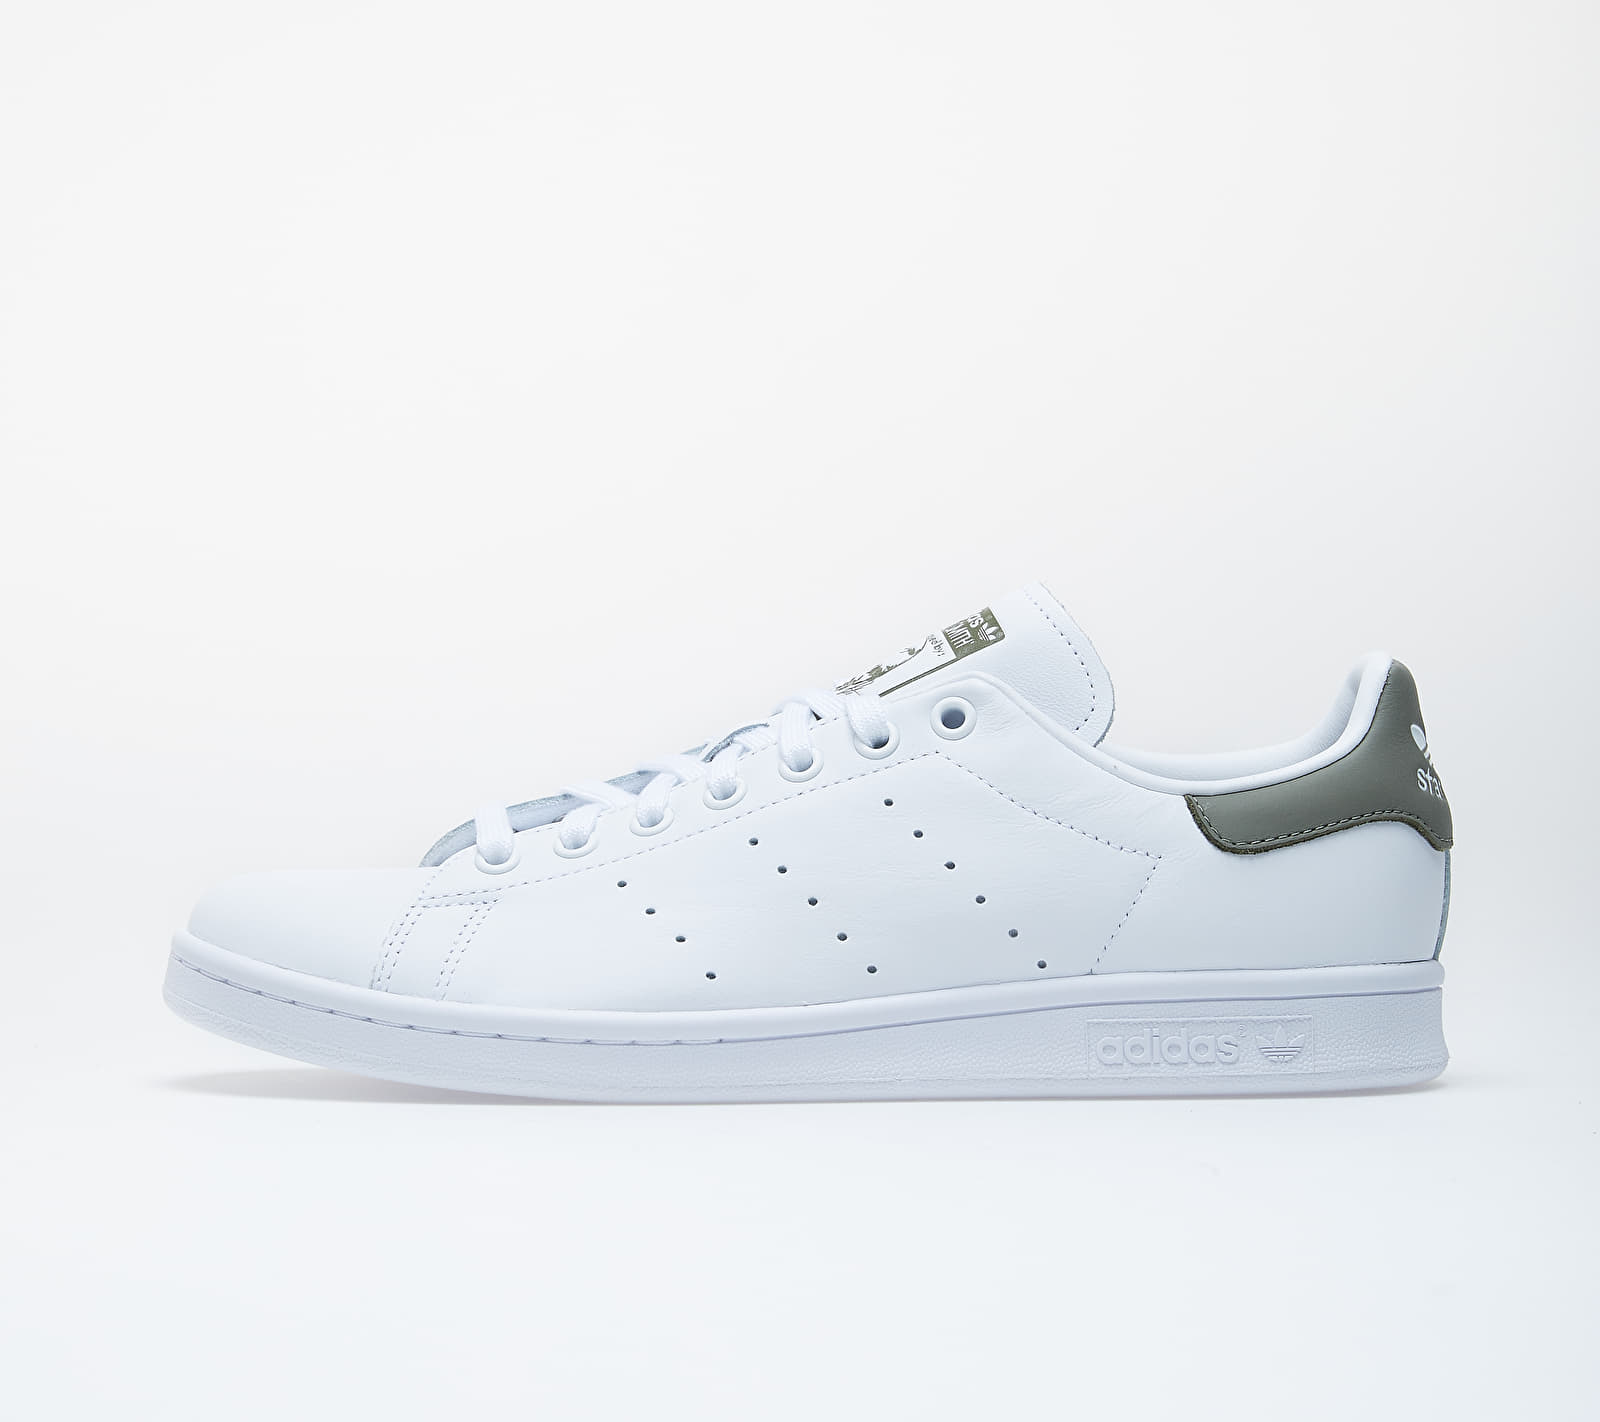 adidas Stan Smith Ftw White/ Ftw White/ Legend Green EUR 46 2/3